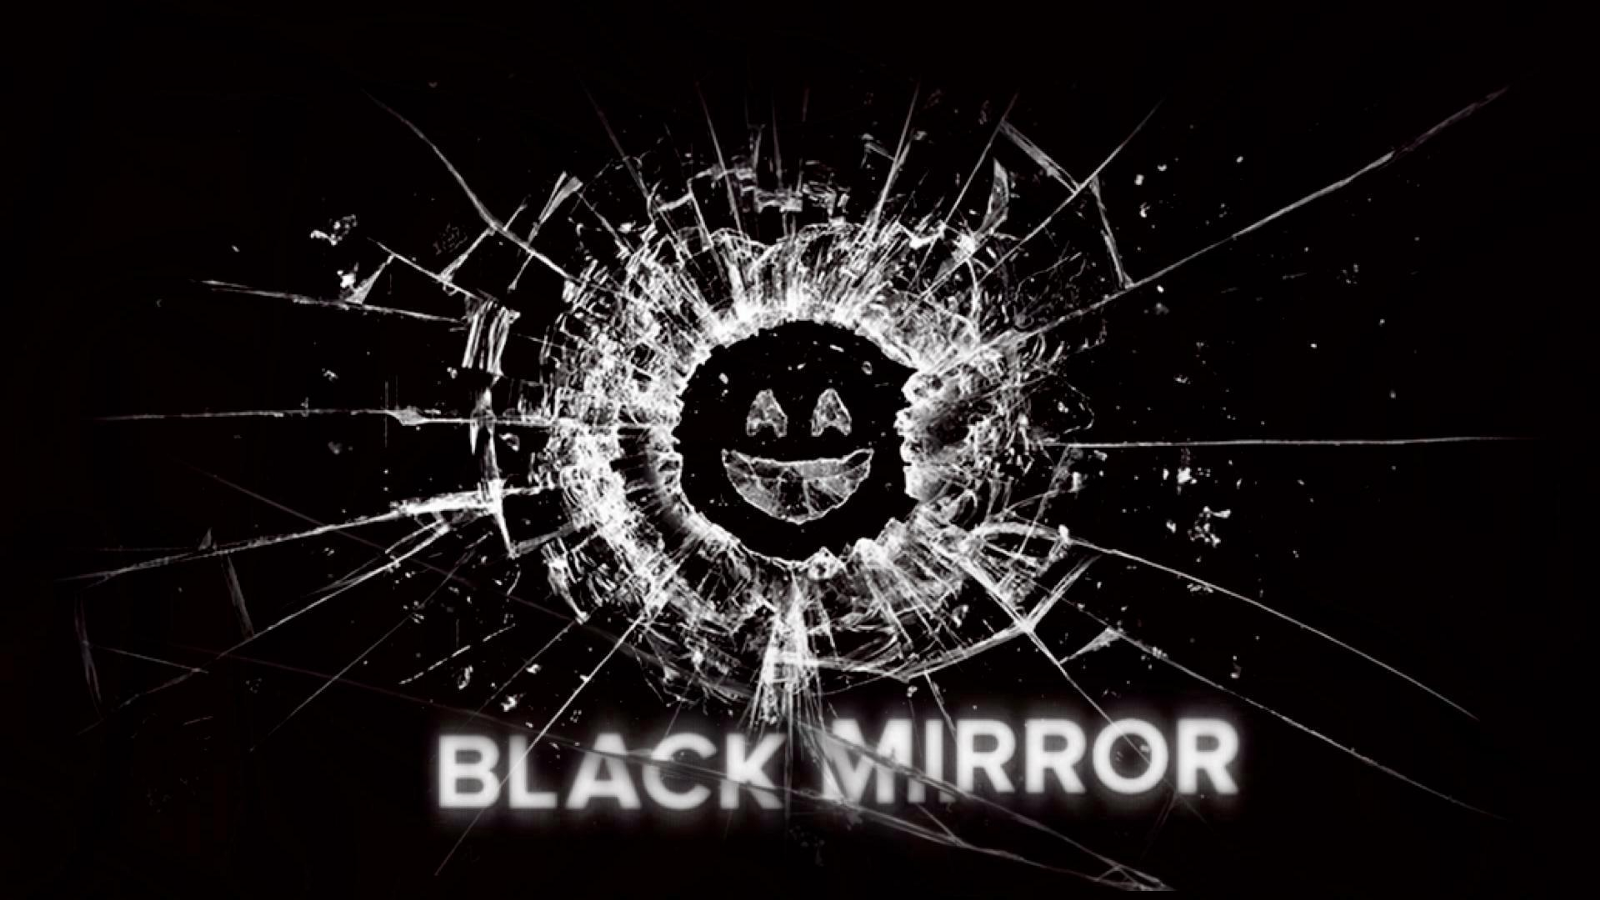 Black Mirror Returns With A 'Death To 2020' Special On Netflix This Week